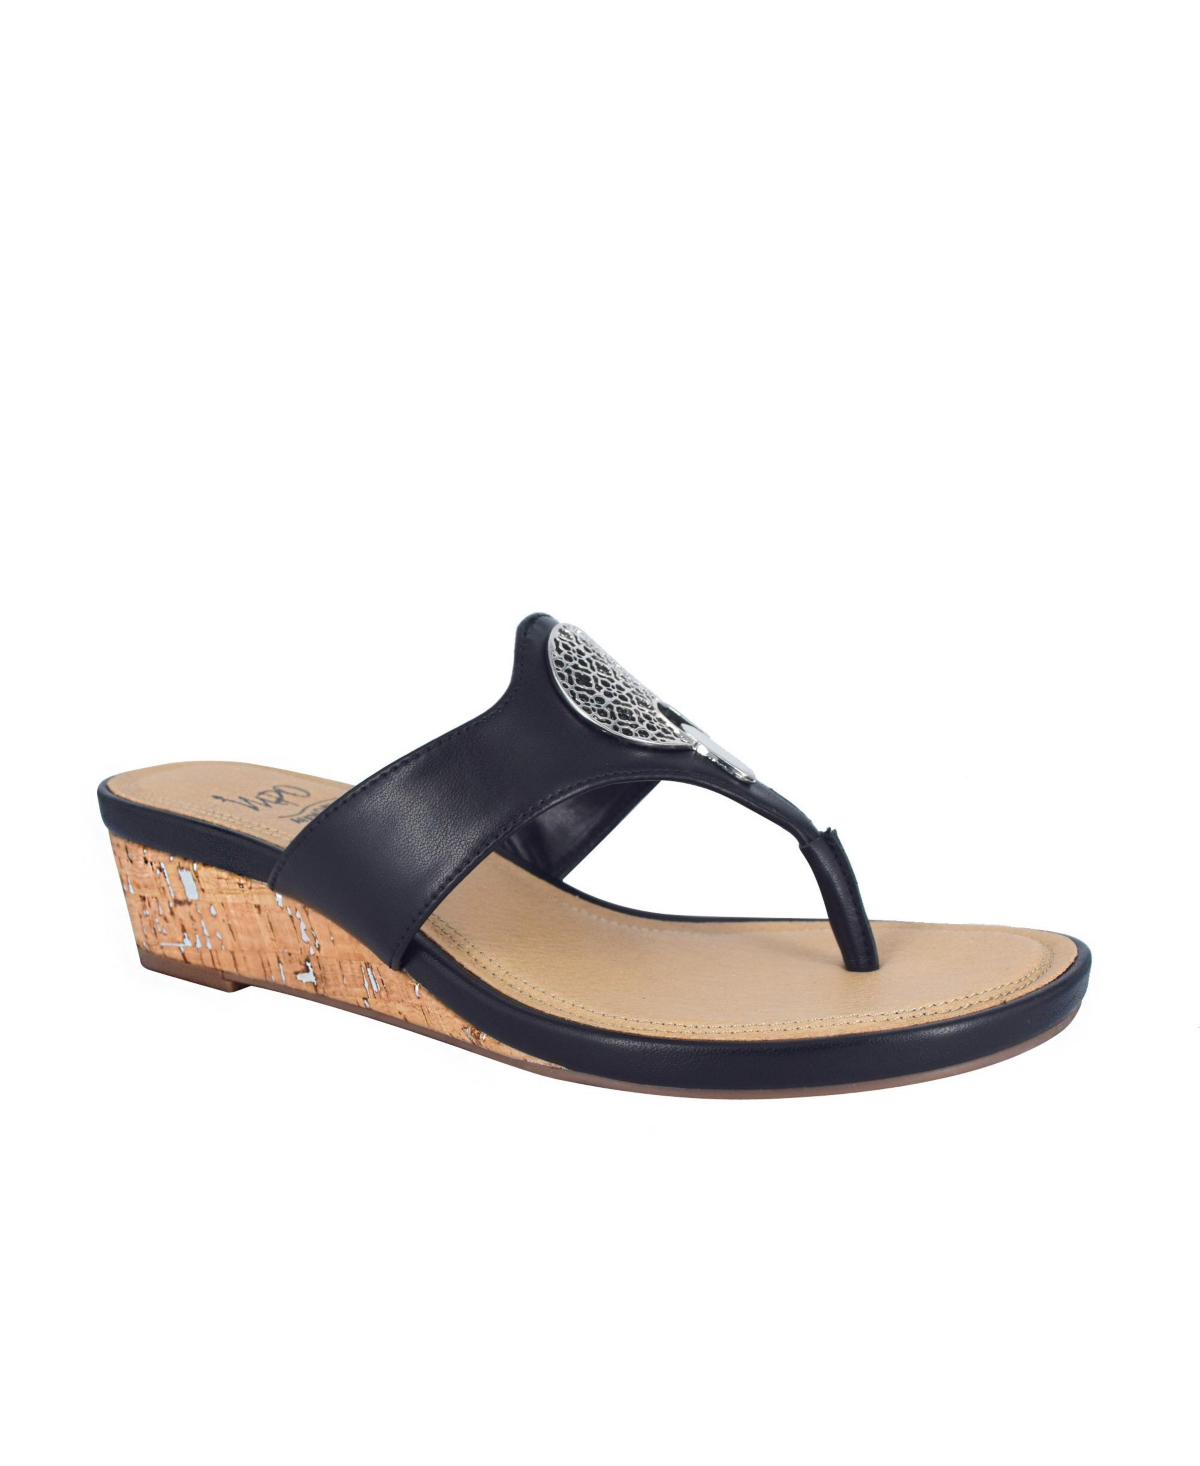 Impo Ronella Wedge Sandal Women's Shoes